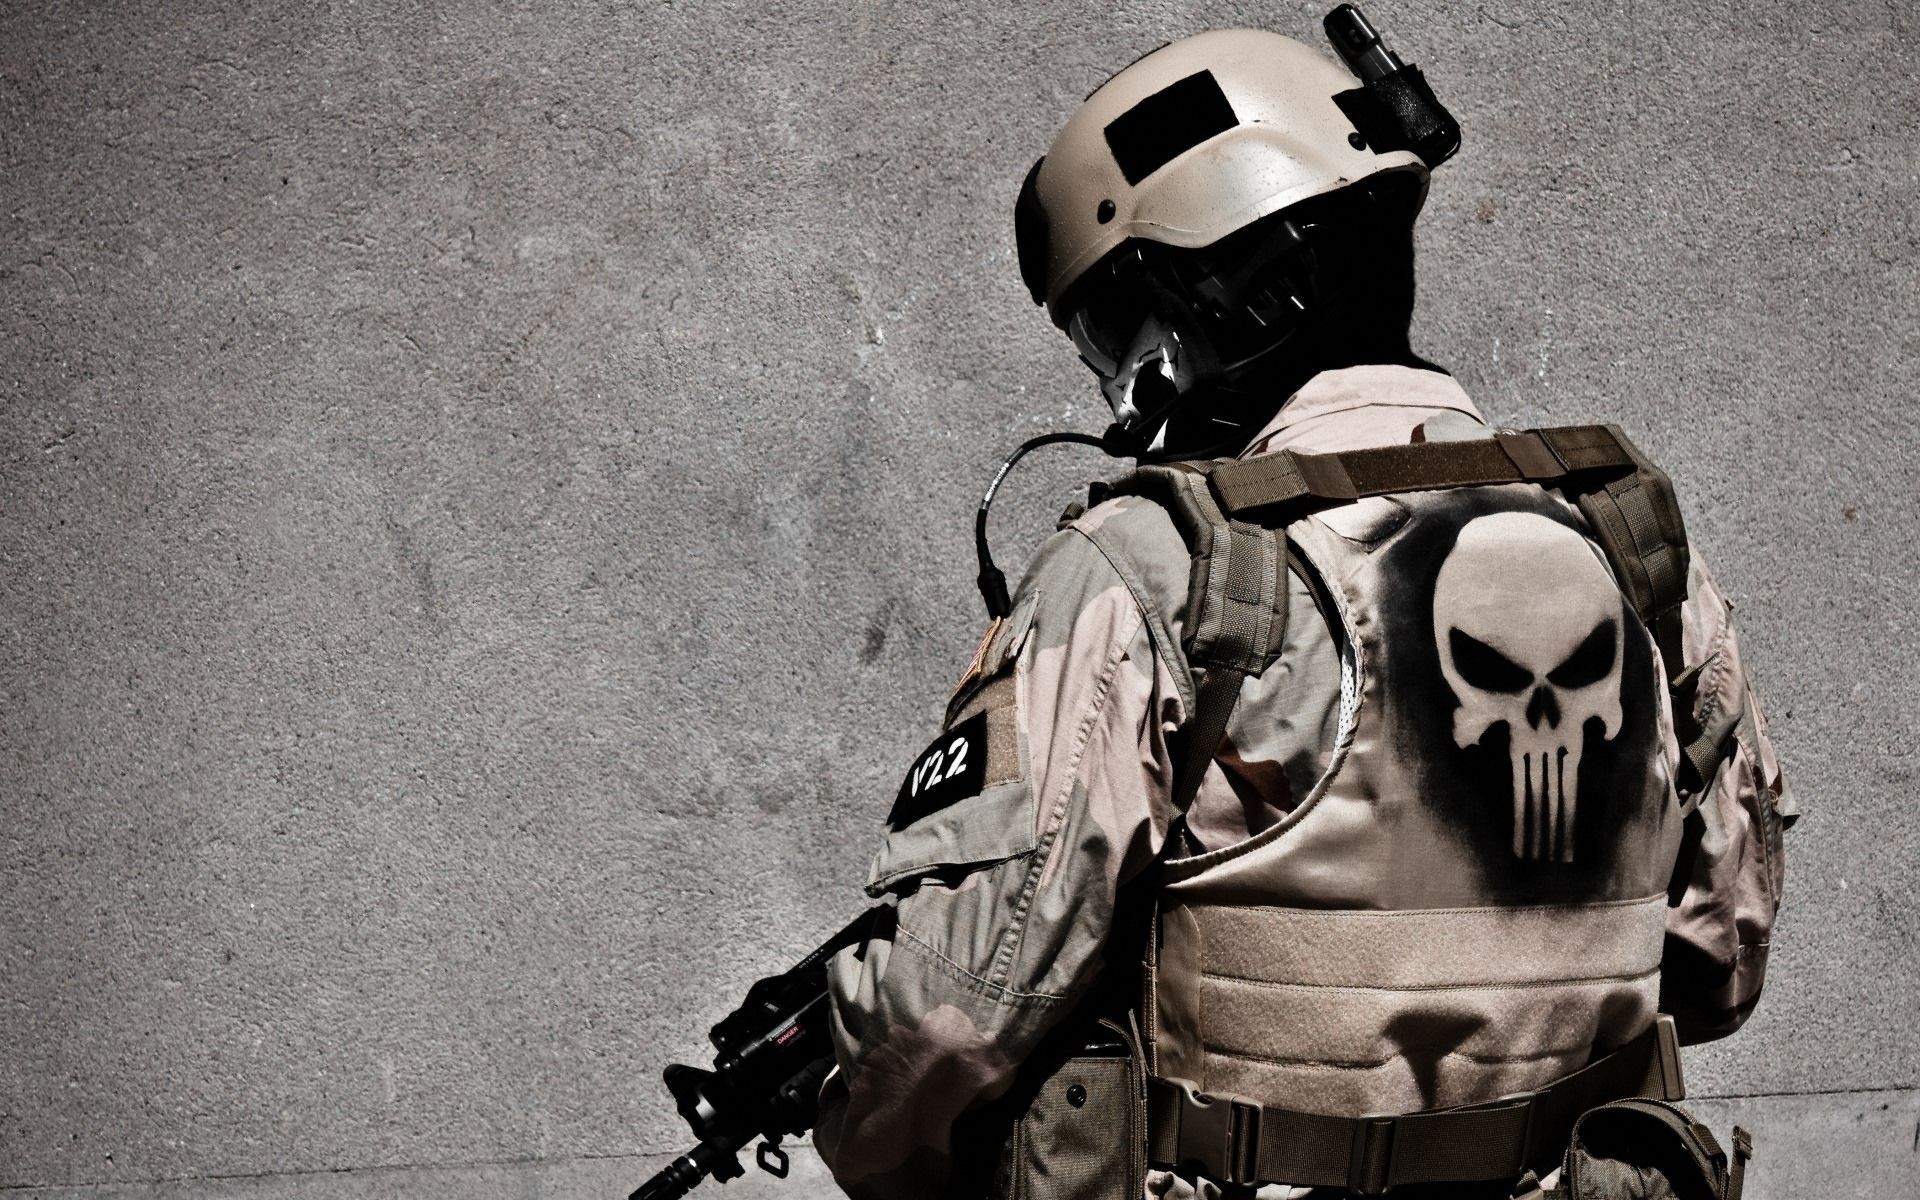 Gallery Army Wallpaper » hdxwallpaperz.com